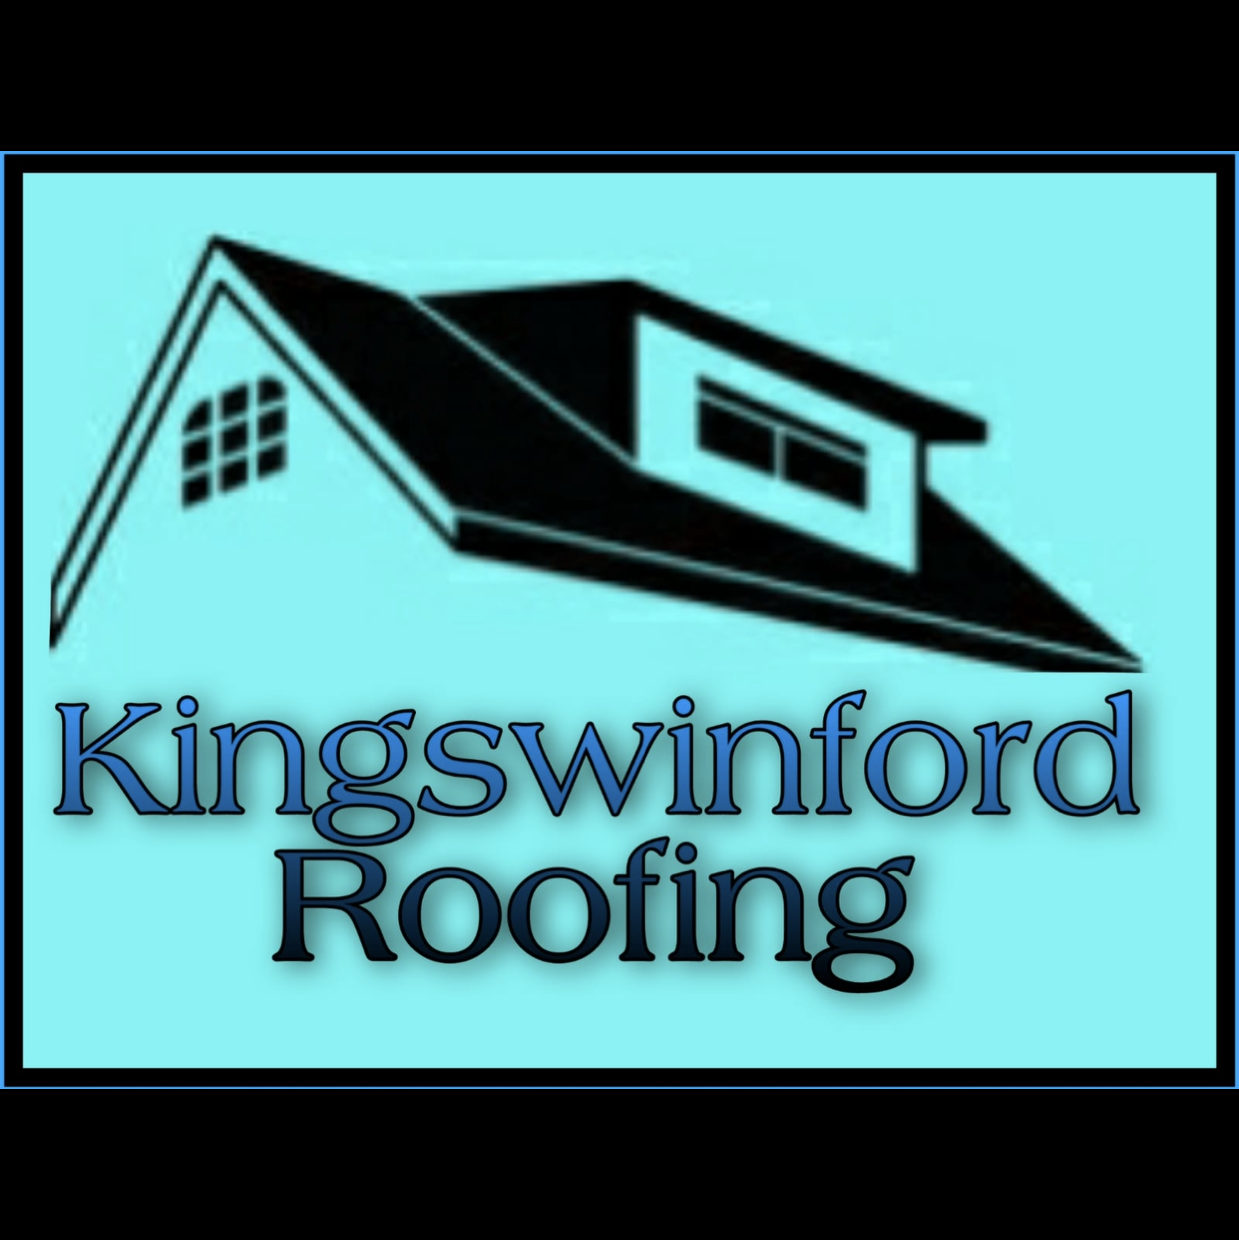 Kingswinford Roofing Services Ltd